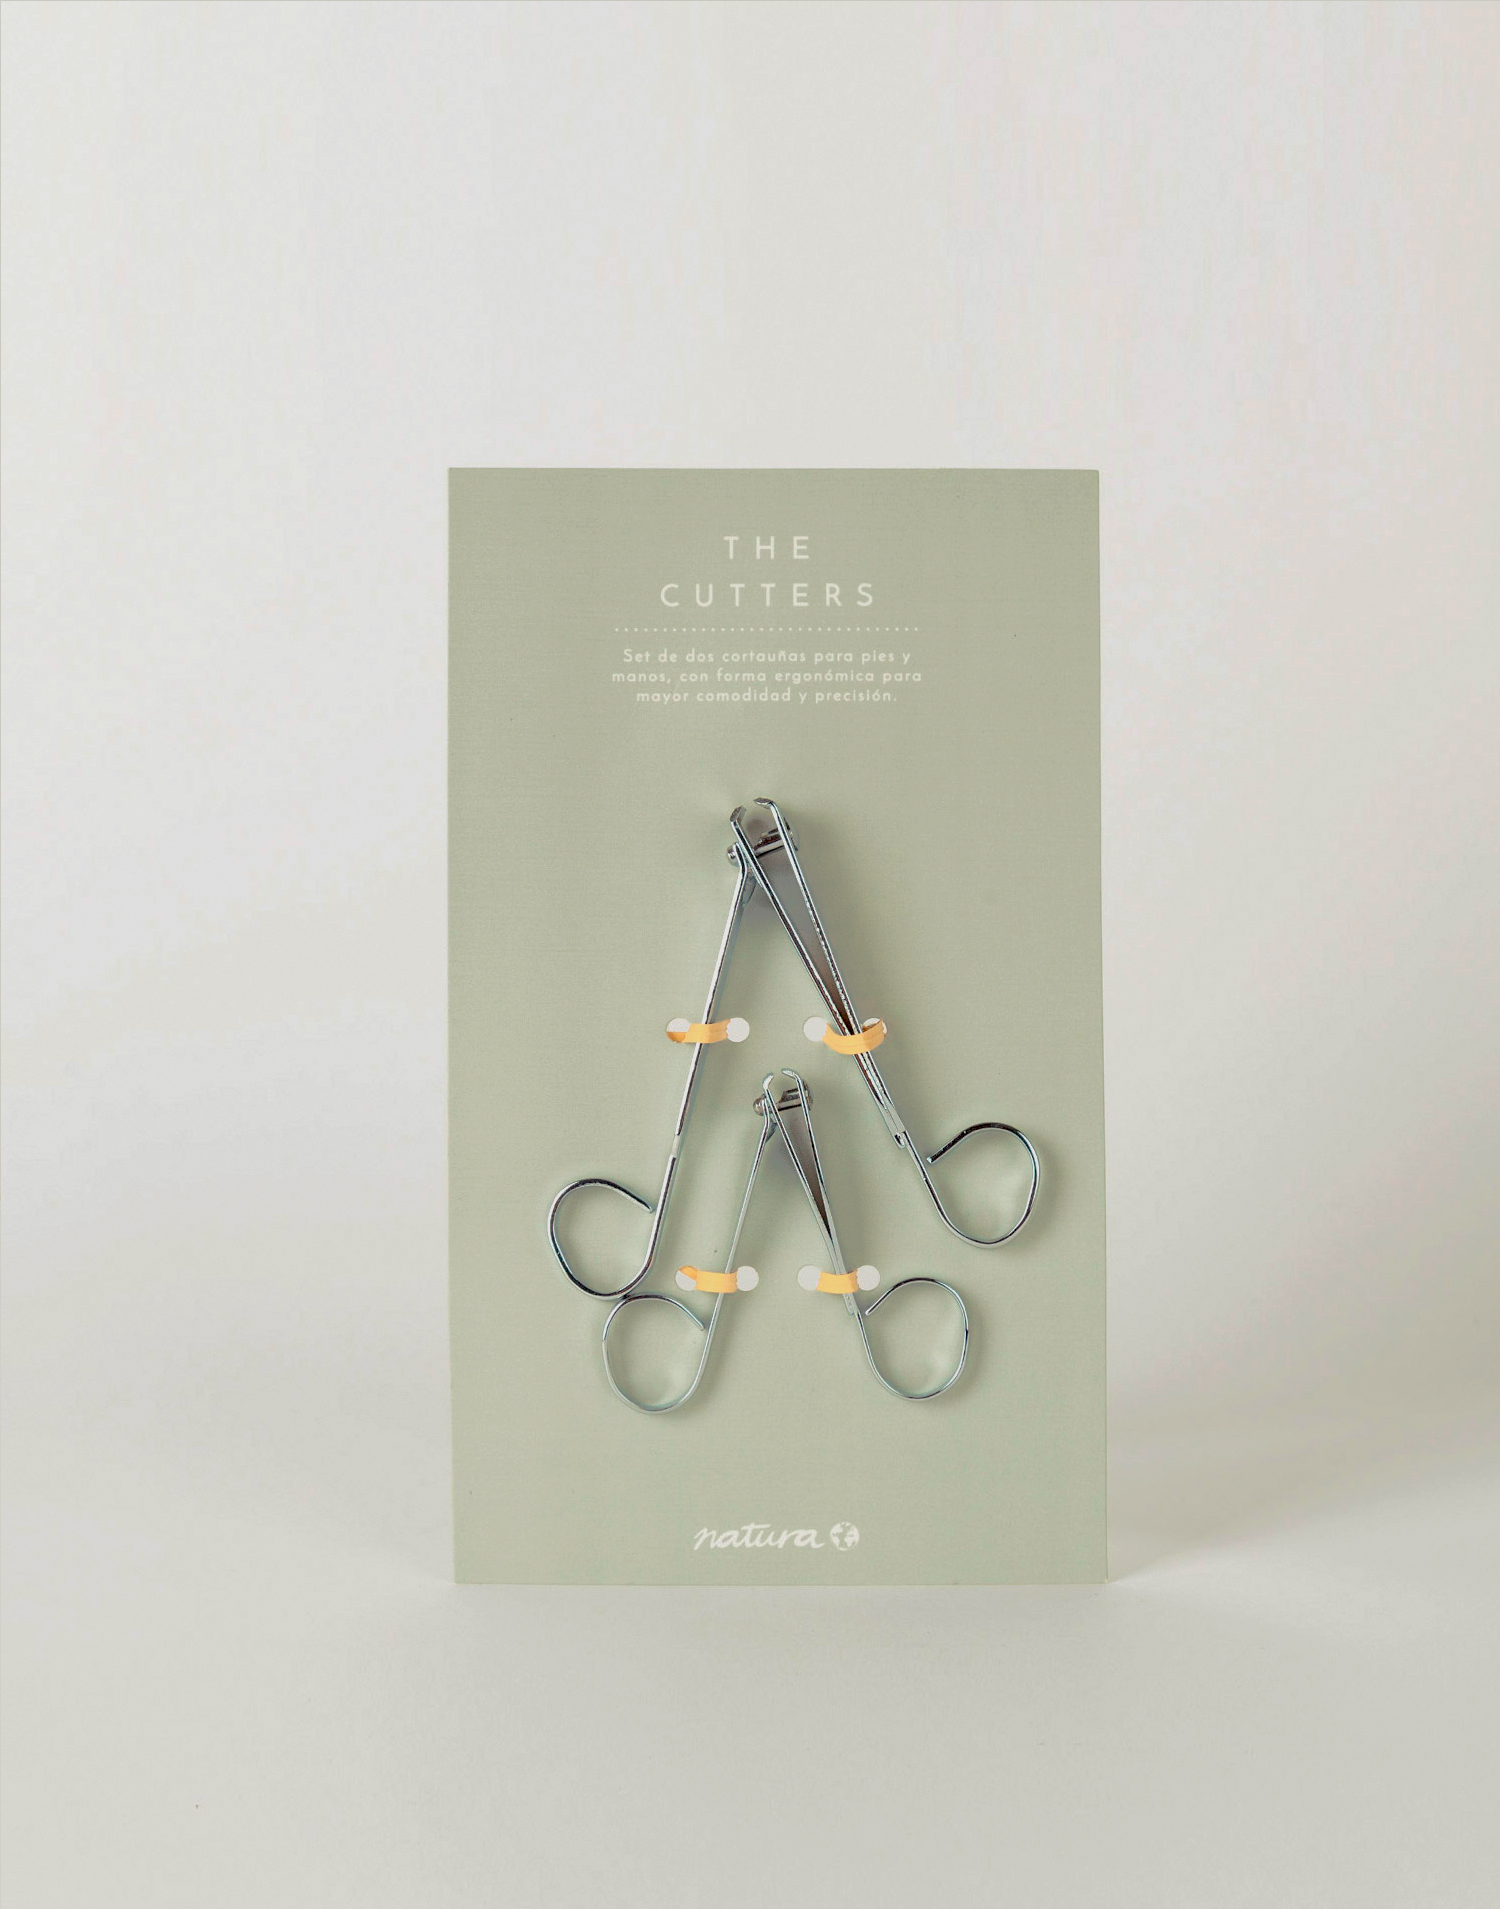 Nail clippers 2 set